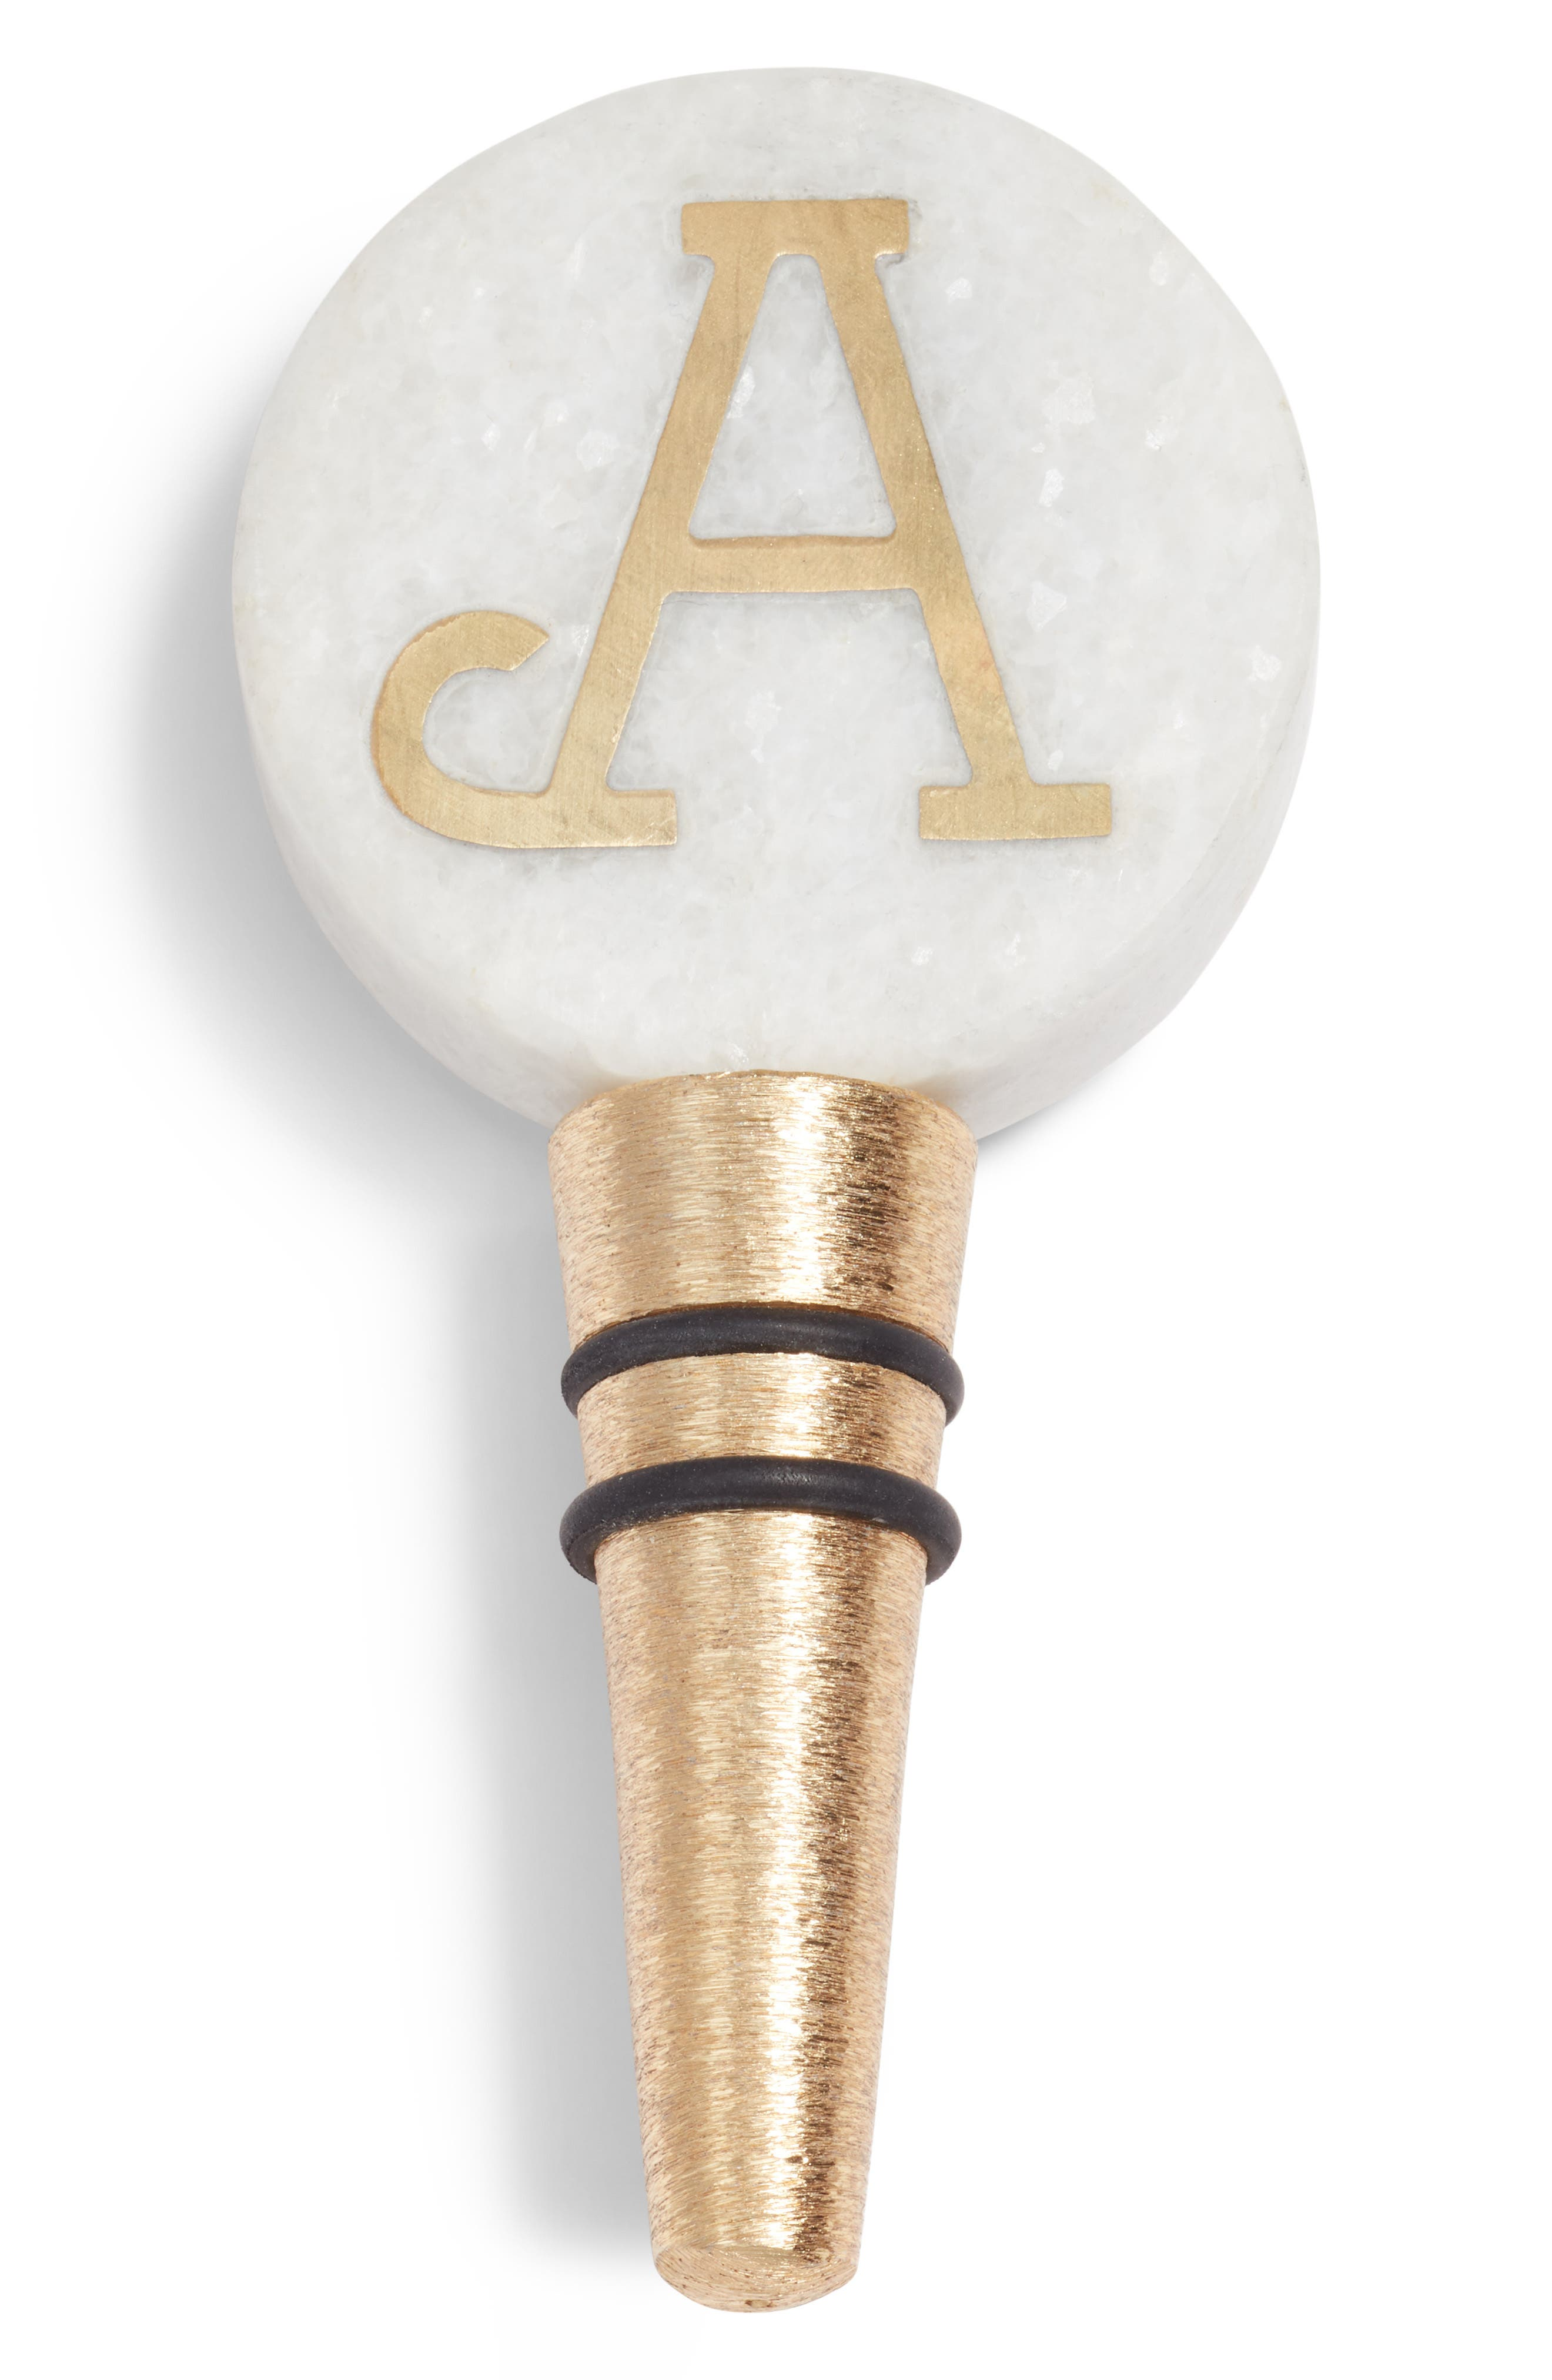 NORDSTROM AT HOME, Monogram Marble Bottle Stopper, Main thumbnail 1, color, WHITE/ GOLD A